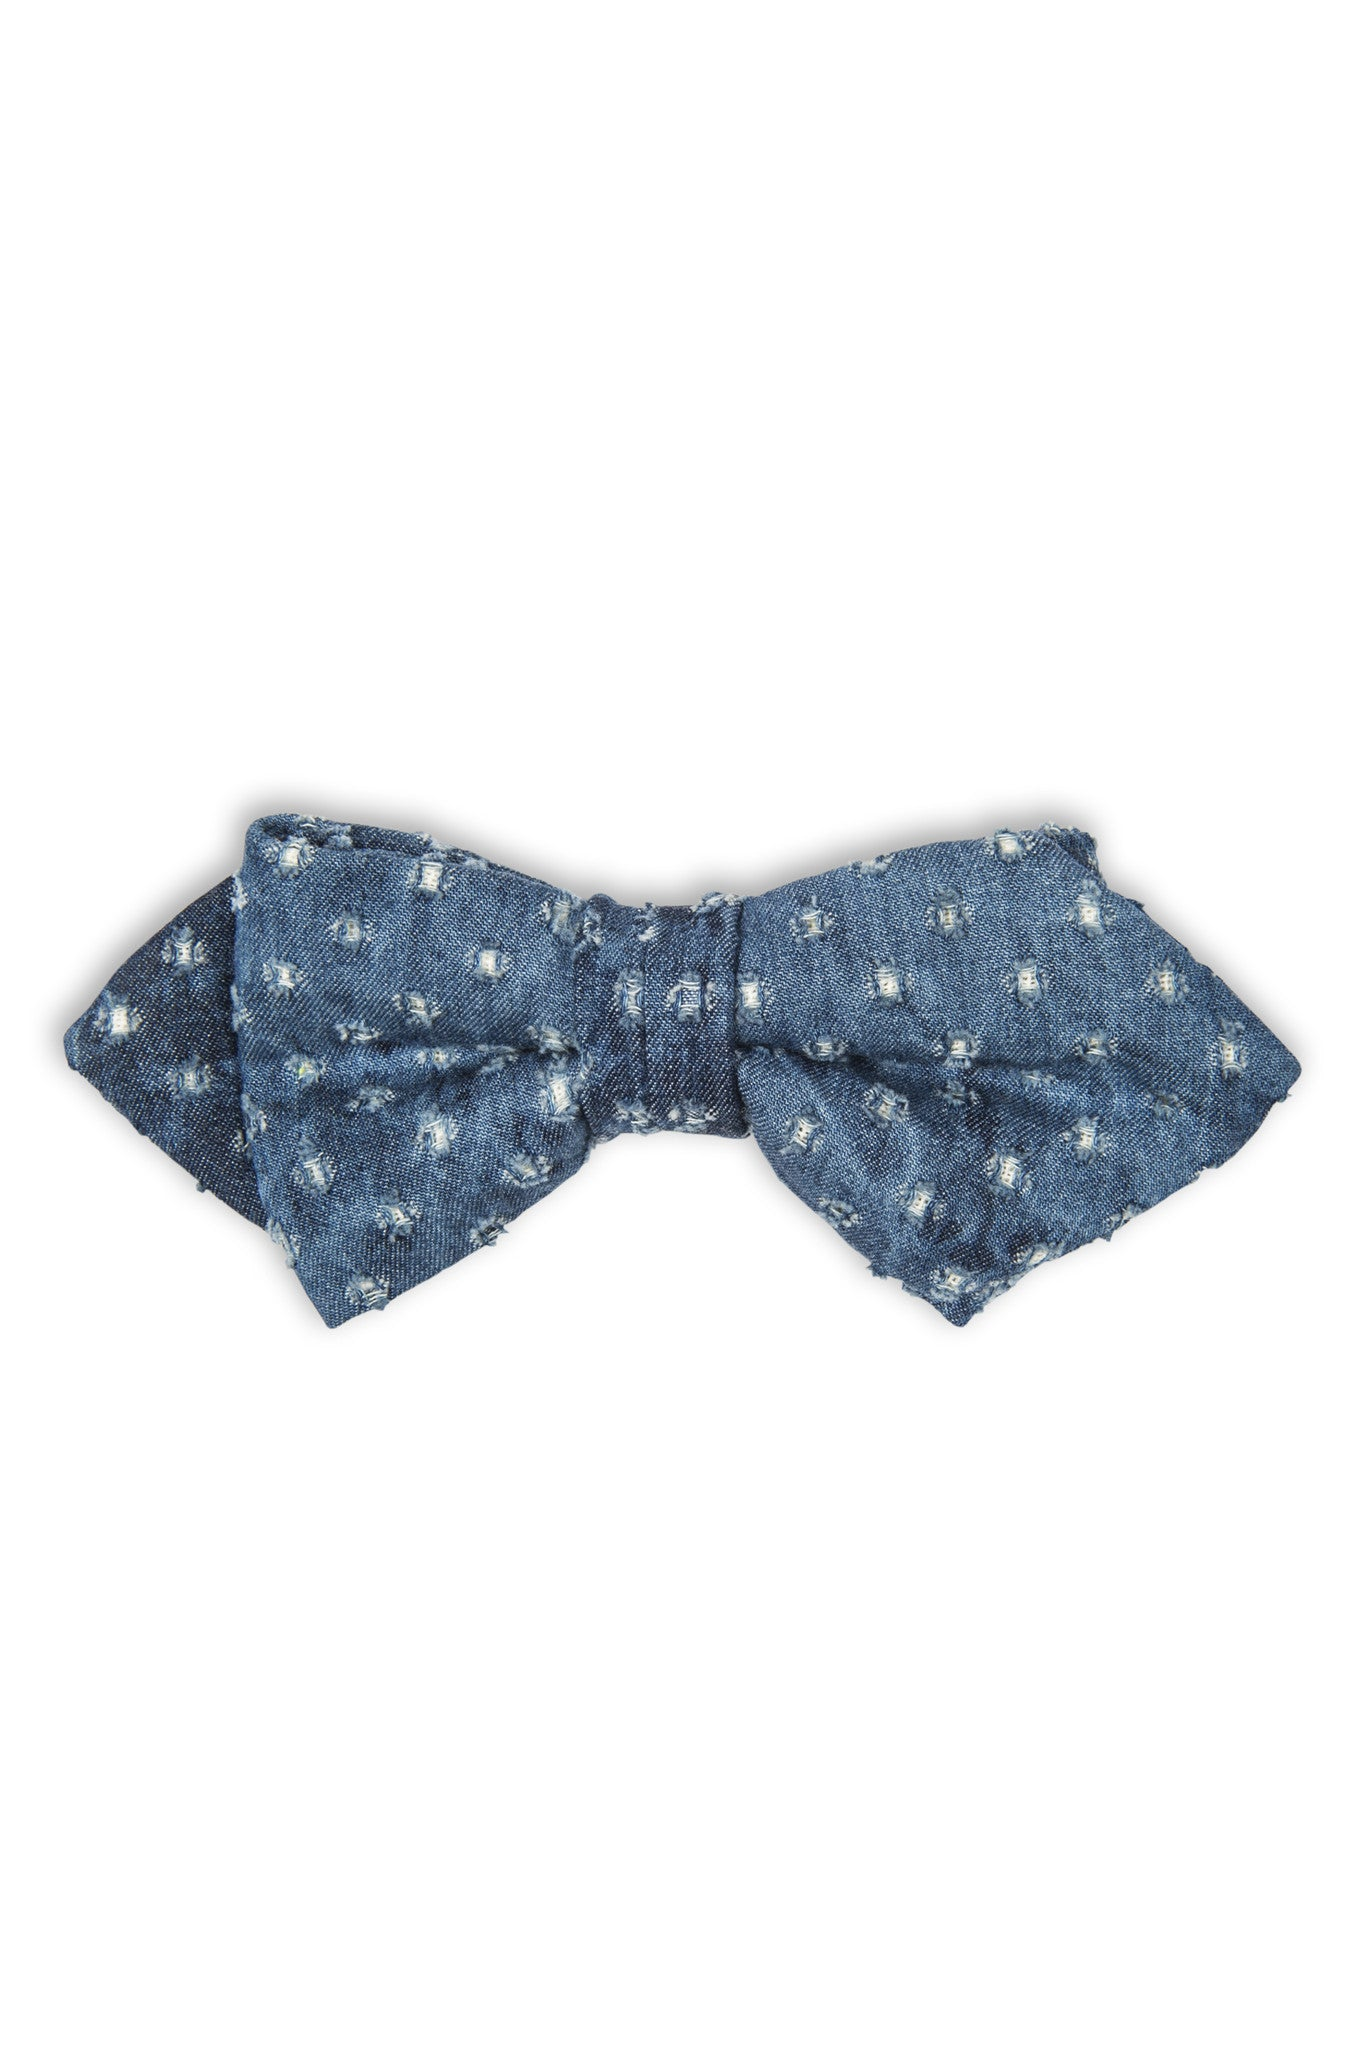 Noeud papillon en denim  - Denim fabric bow tie